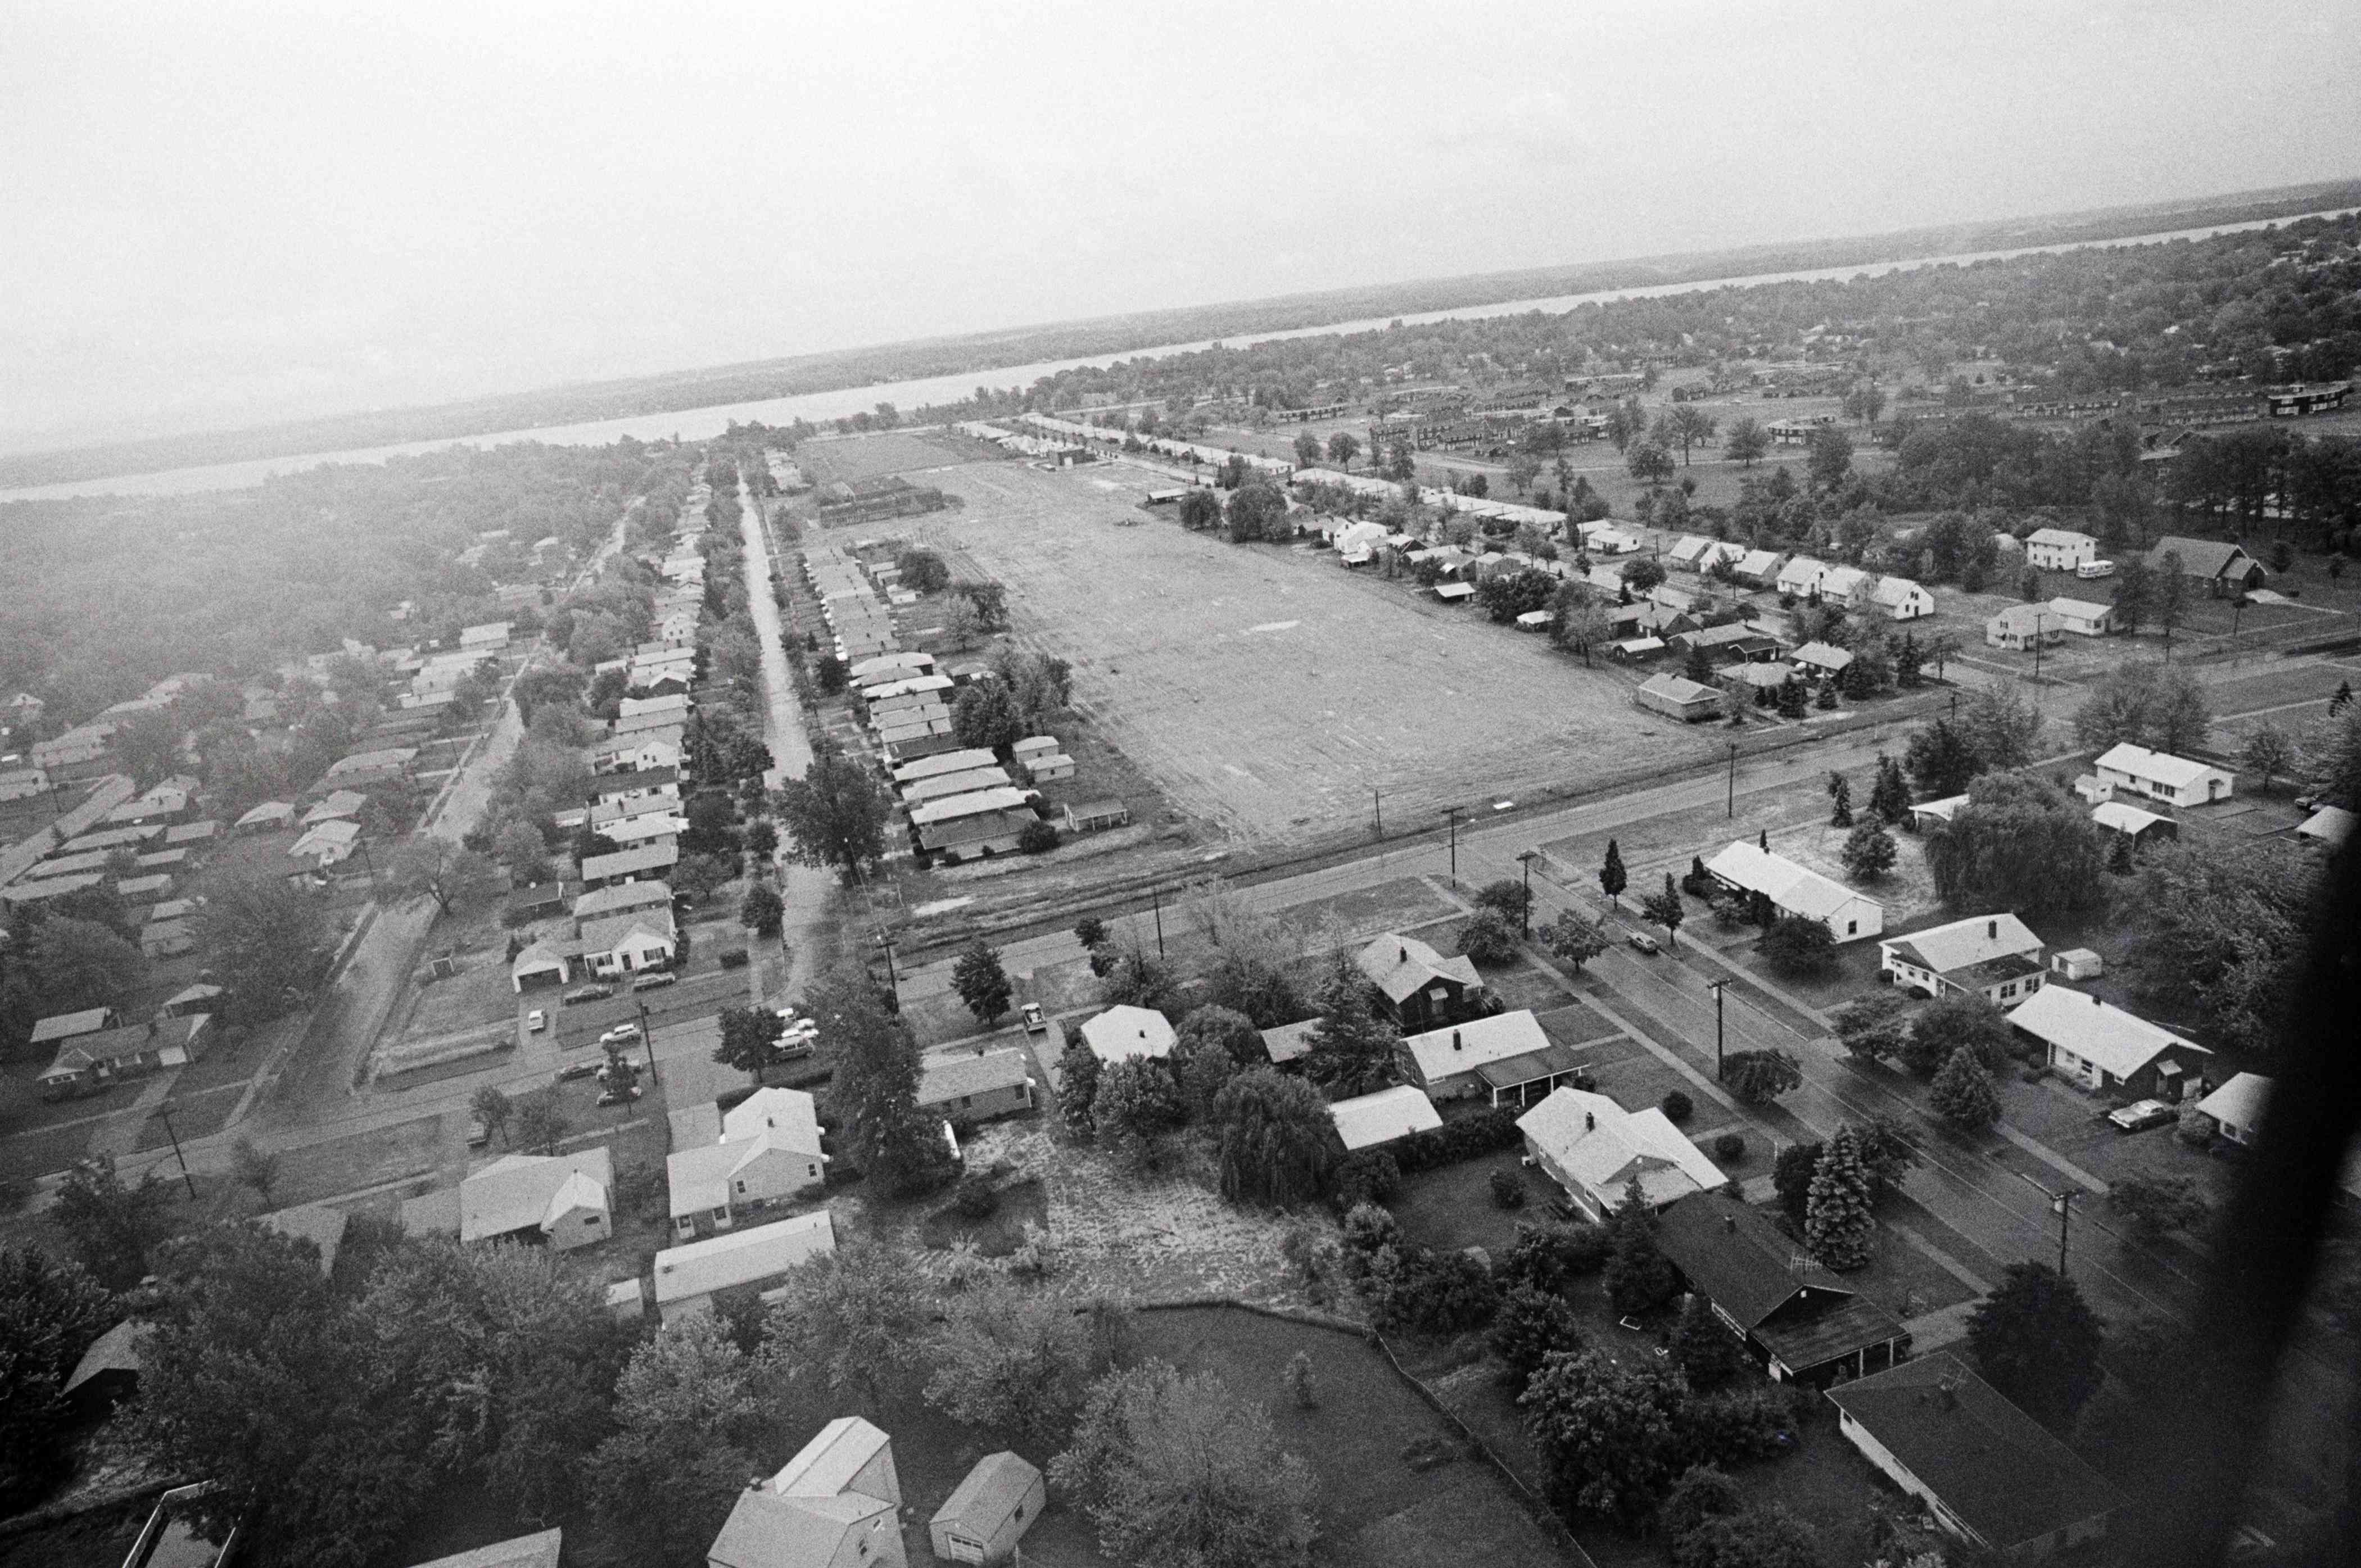 Aerial view of abandoned houses and buildings in Love Canal neighborhood